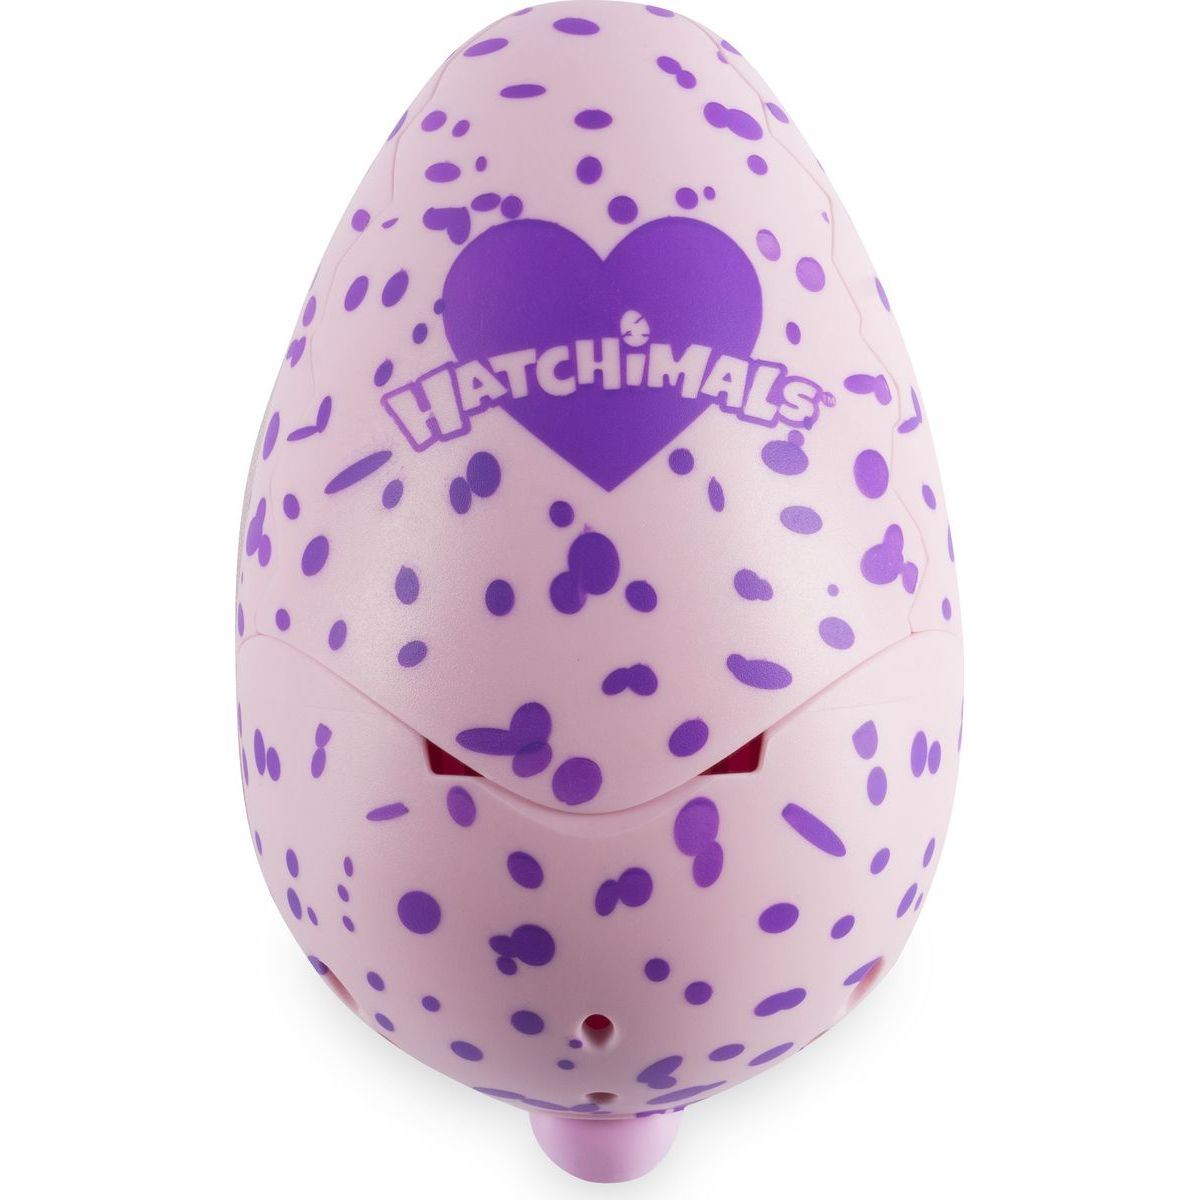 Swimways Hatchimals vajíčko do vody